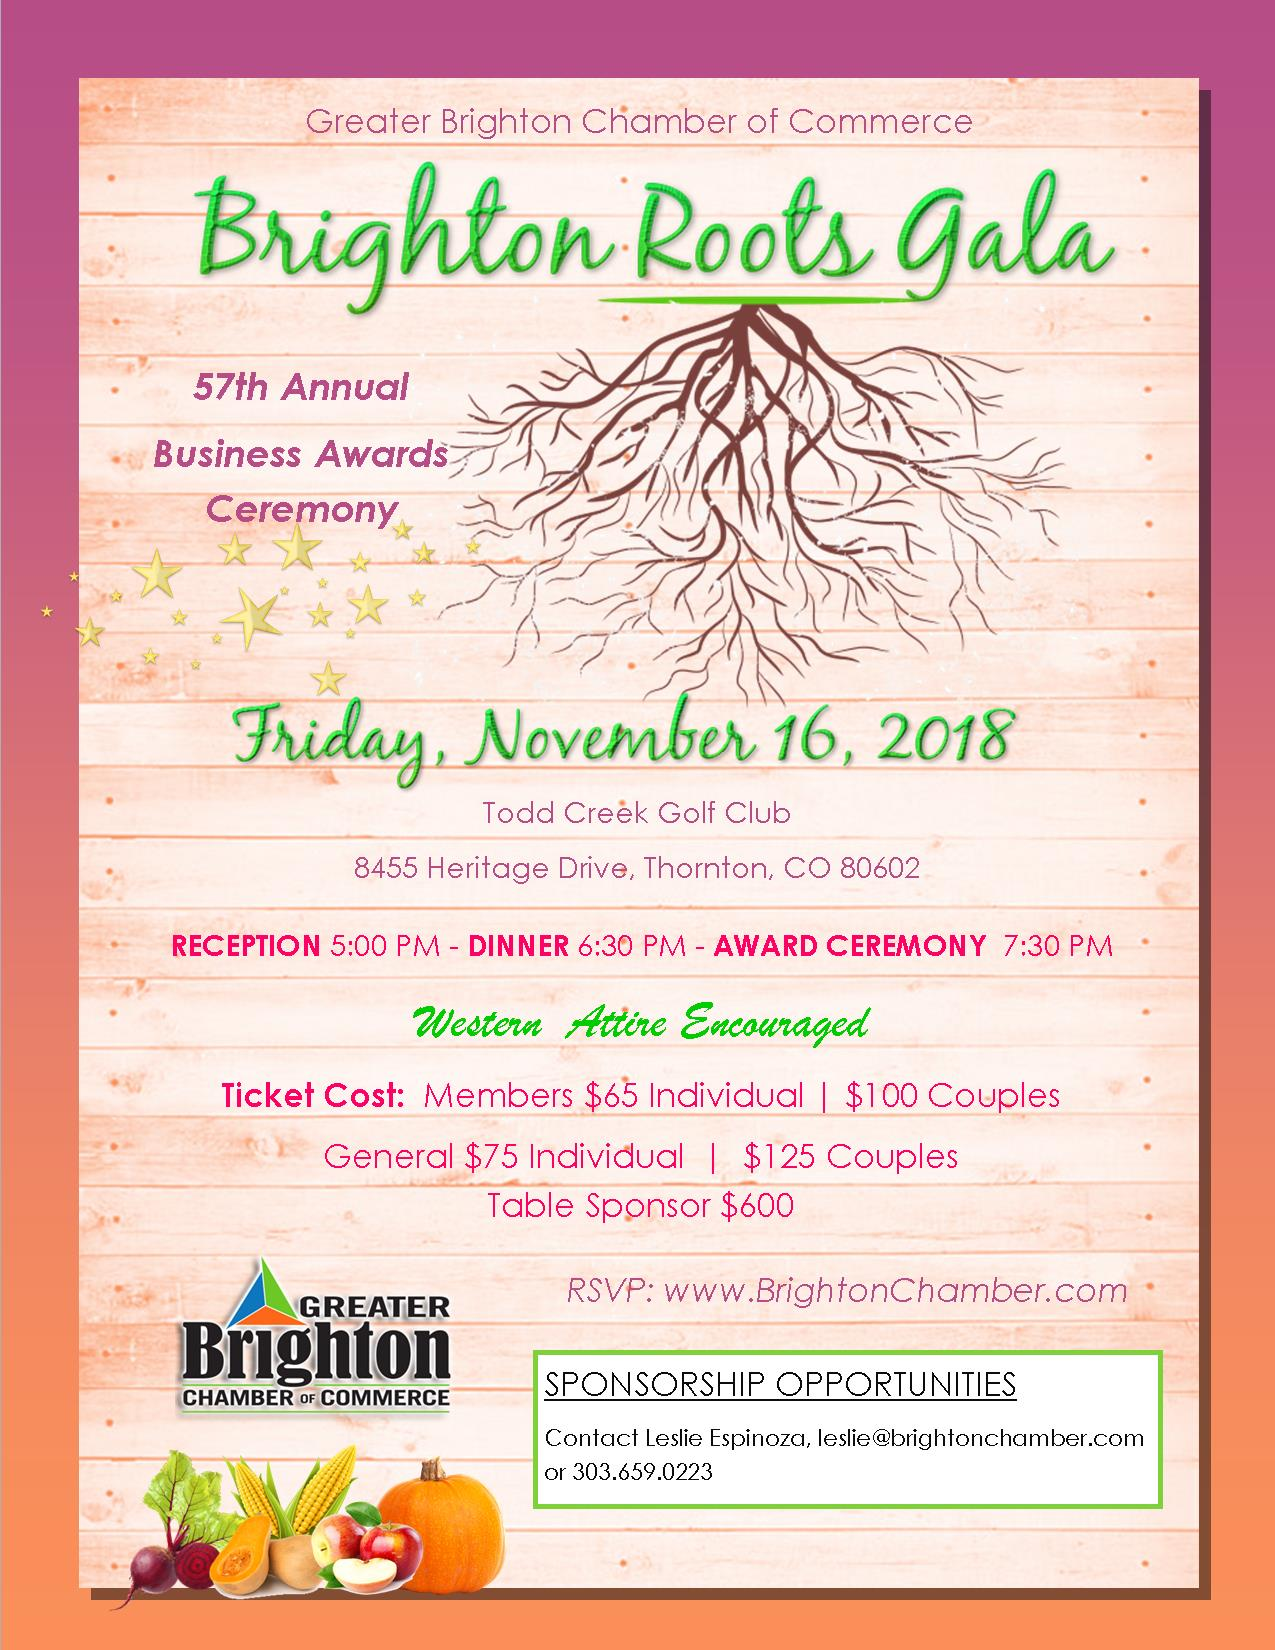 Brighton-Roots-Business-Awards-2018.jpg